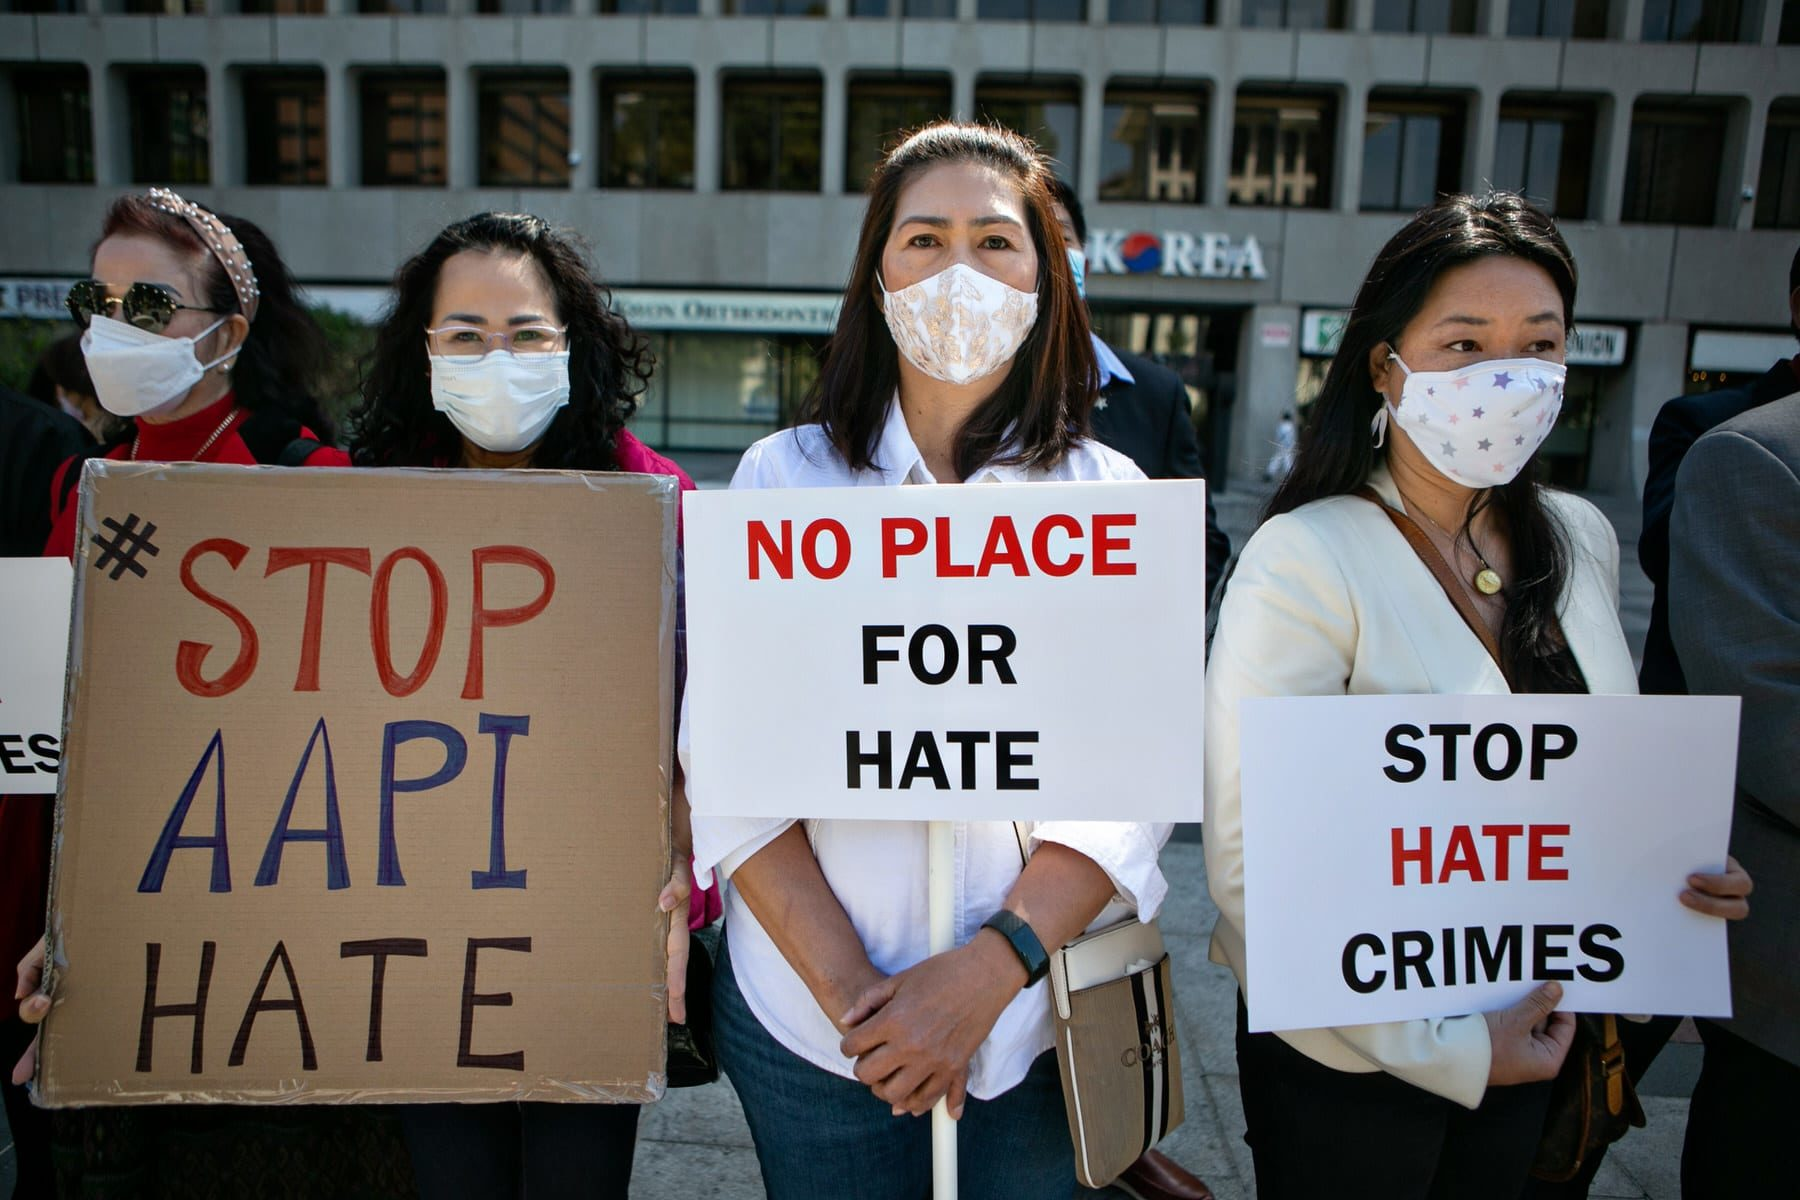 Asian community members hold signs calling for hate to stop.